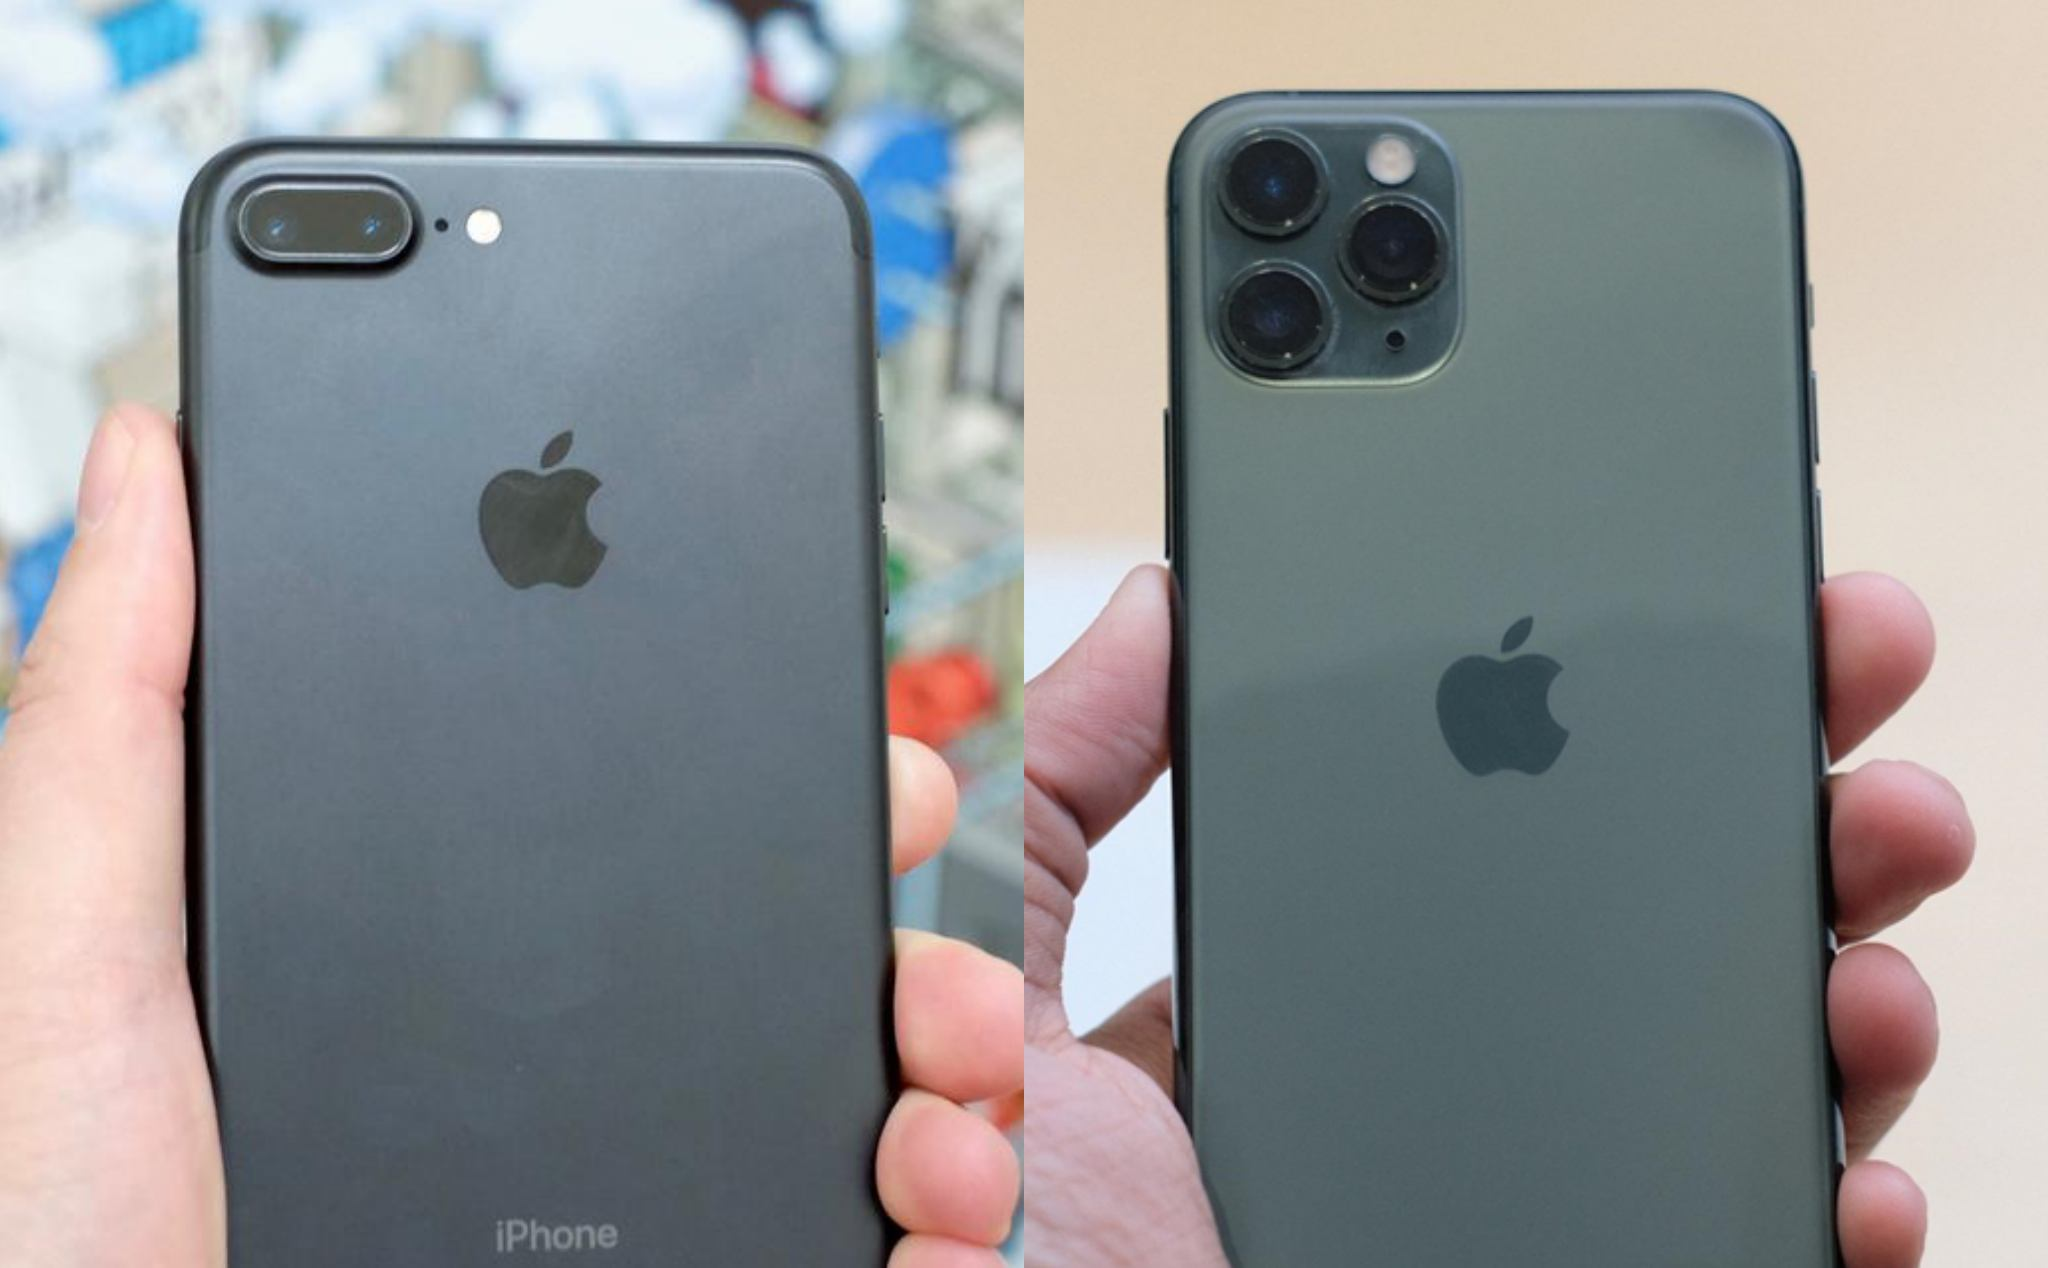 Are using iPhone 7 plus, want to upgrade to 11 Pro Max 256GB